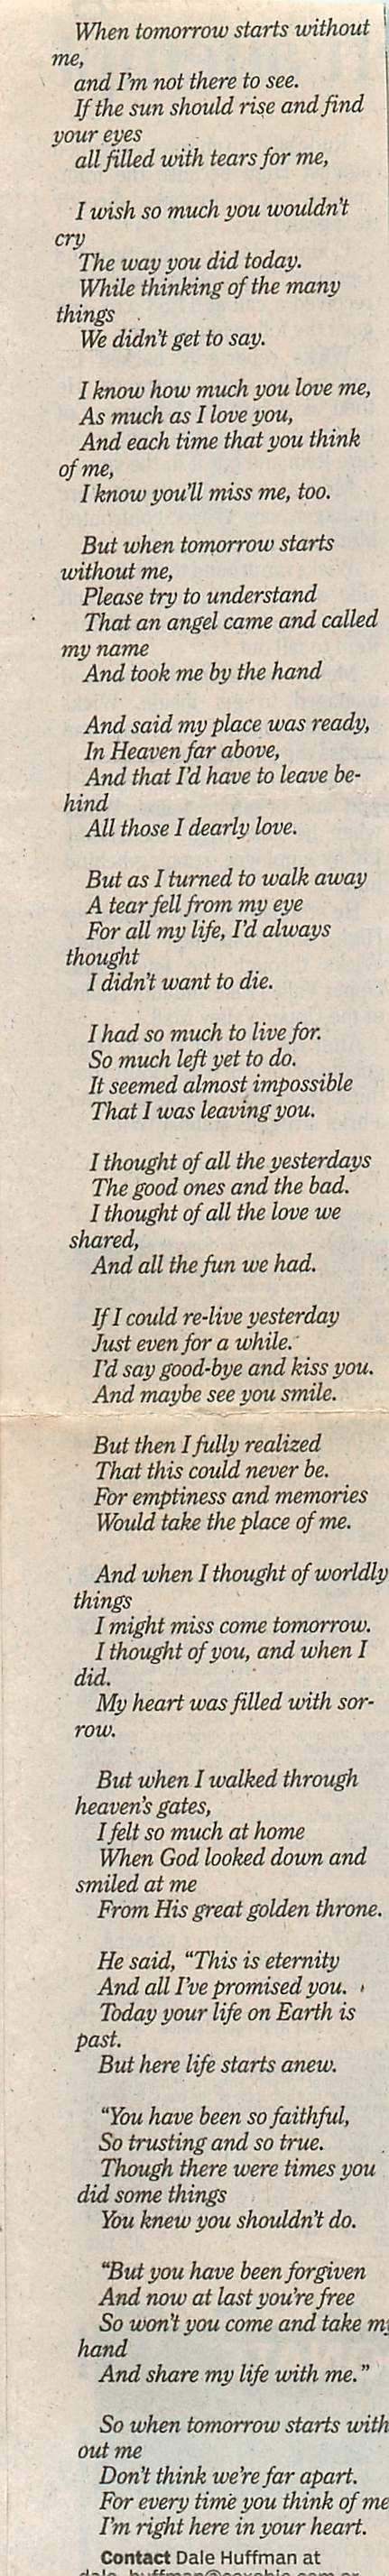 """Available as a poster, """"When tomorrow starts without me.""""  Someone found this poem clipping in their mother's bible after she died."""